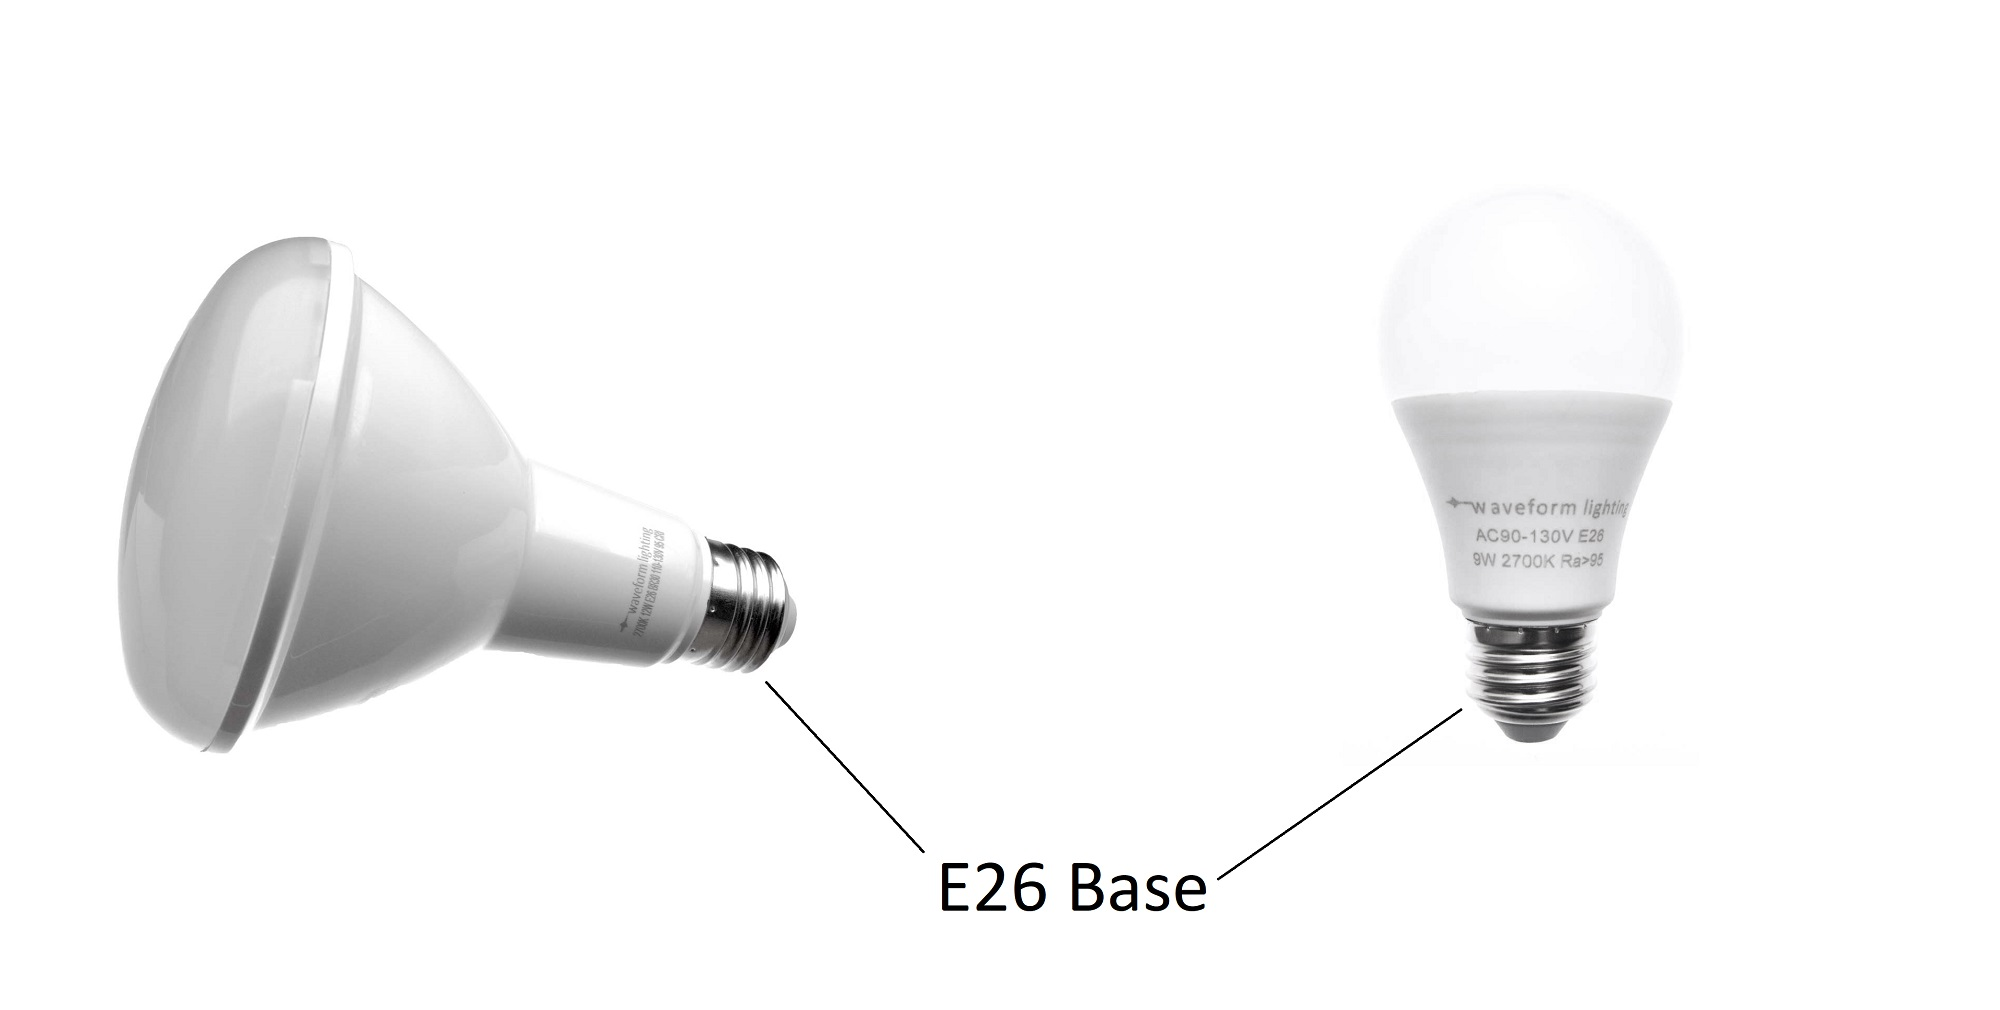 An E26 Bulb Therefore Is Any Or Lamp That Utilizes The Cap Base For Mounting And Electrical Contact